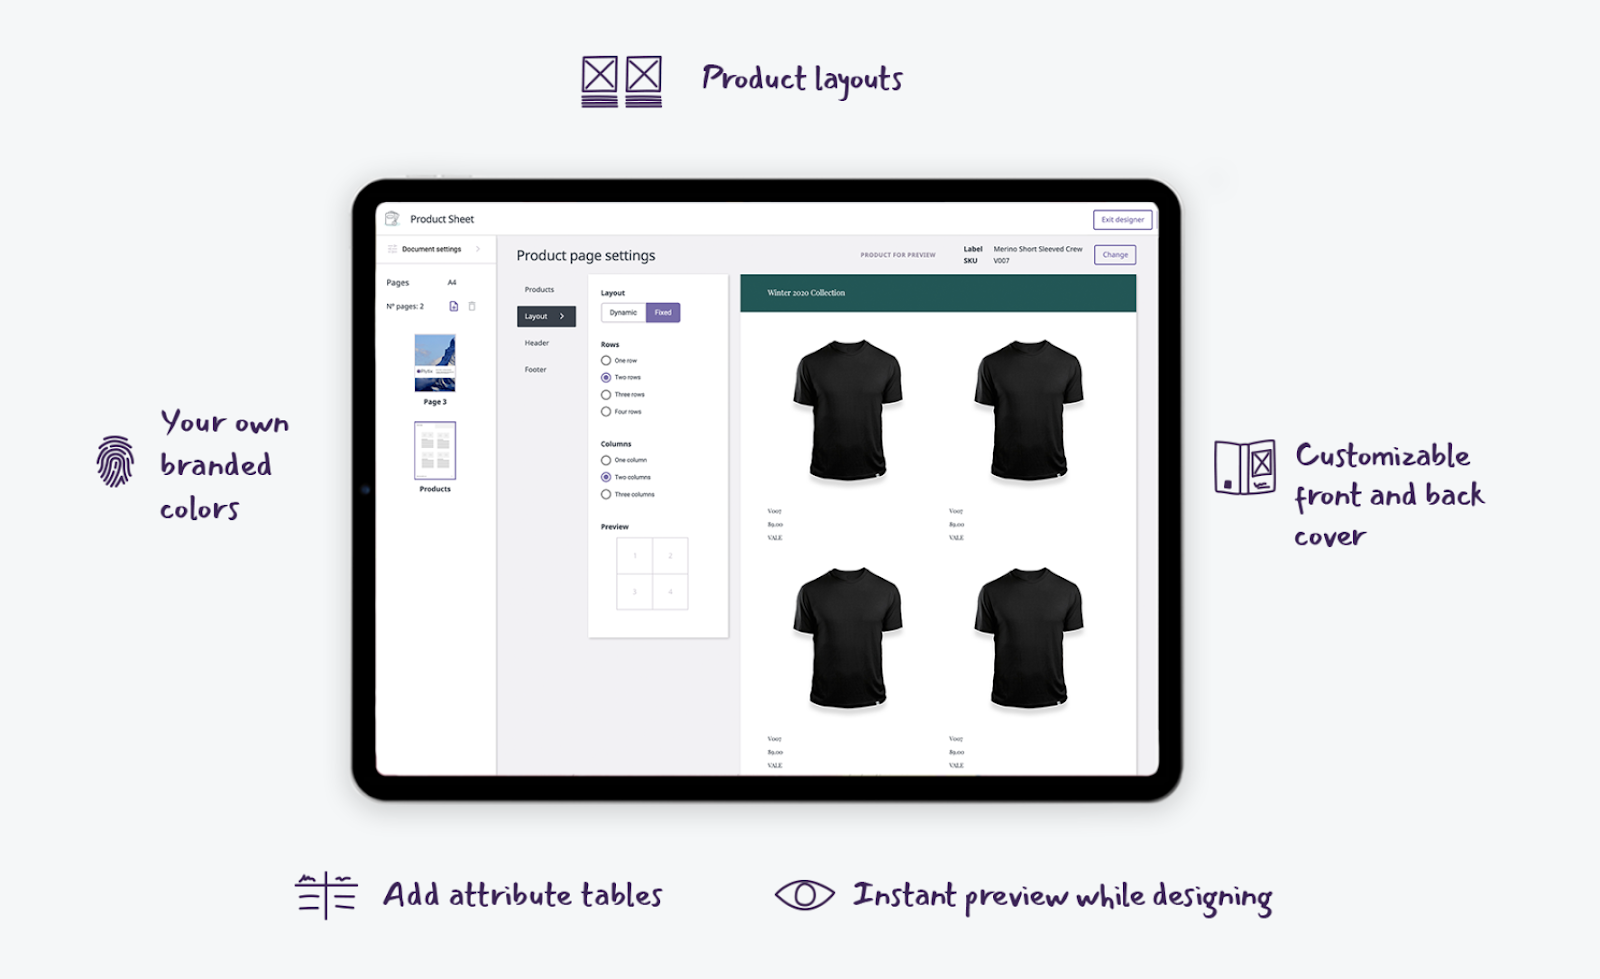 Plytix: The Top Line Sheet Tool That Does It All